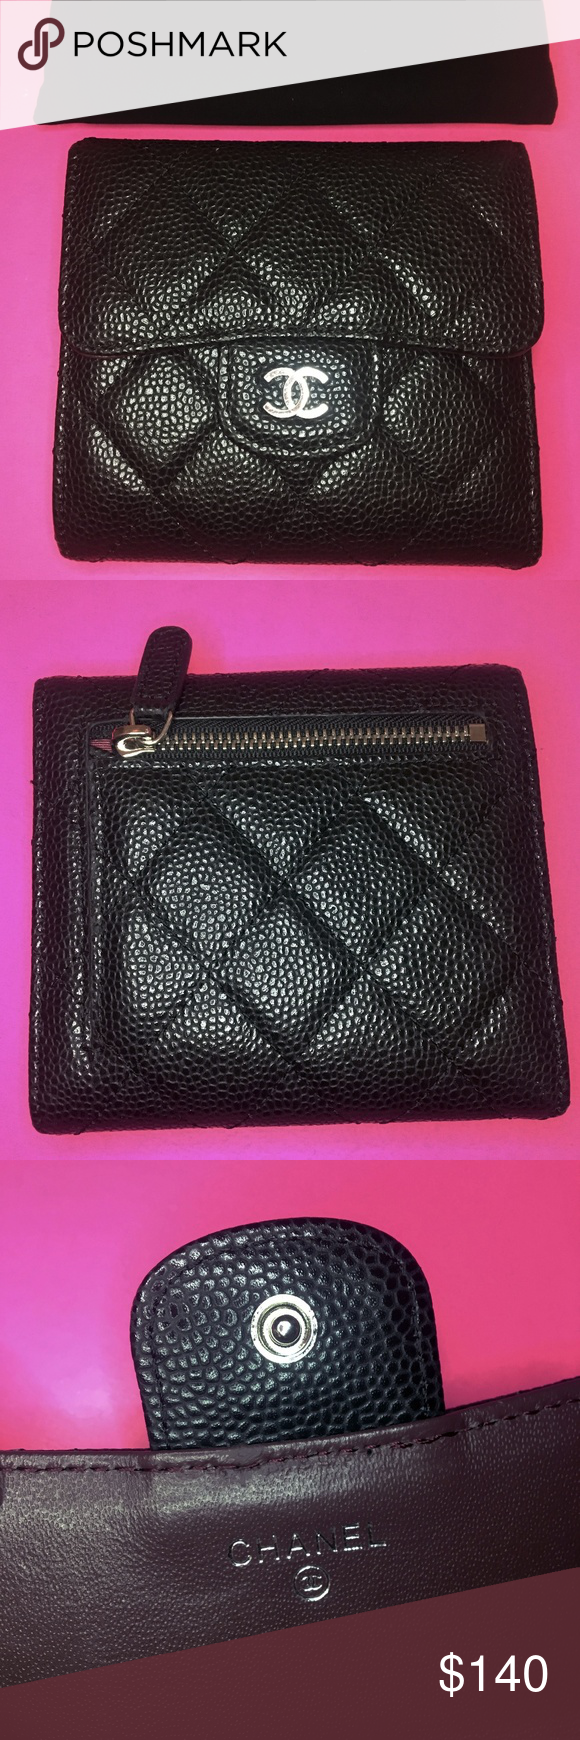 1177eb933667 Chanel Small Flap Wallet - Black Silver Hardware Classic Chanel Small  Trifold Flap Wallet in Caviar